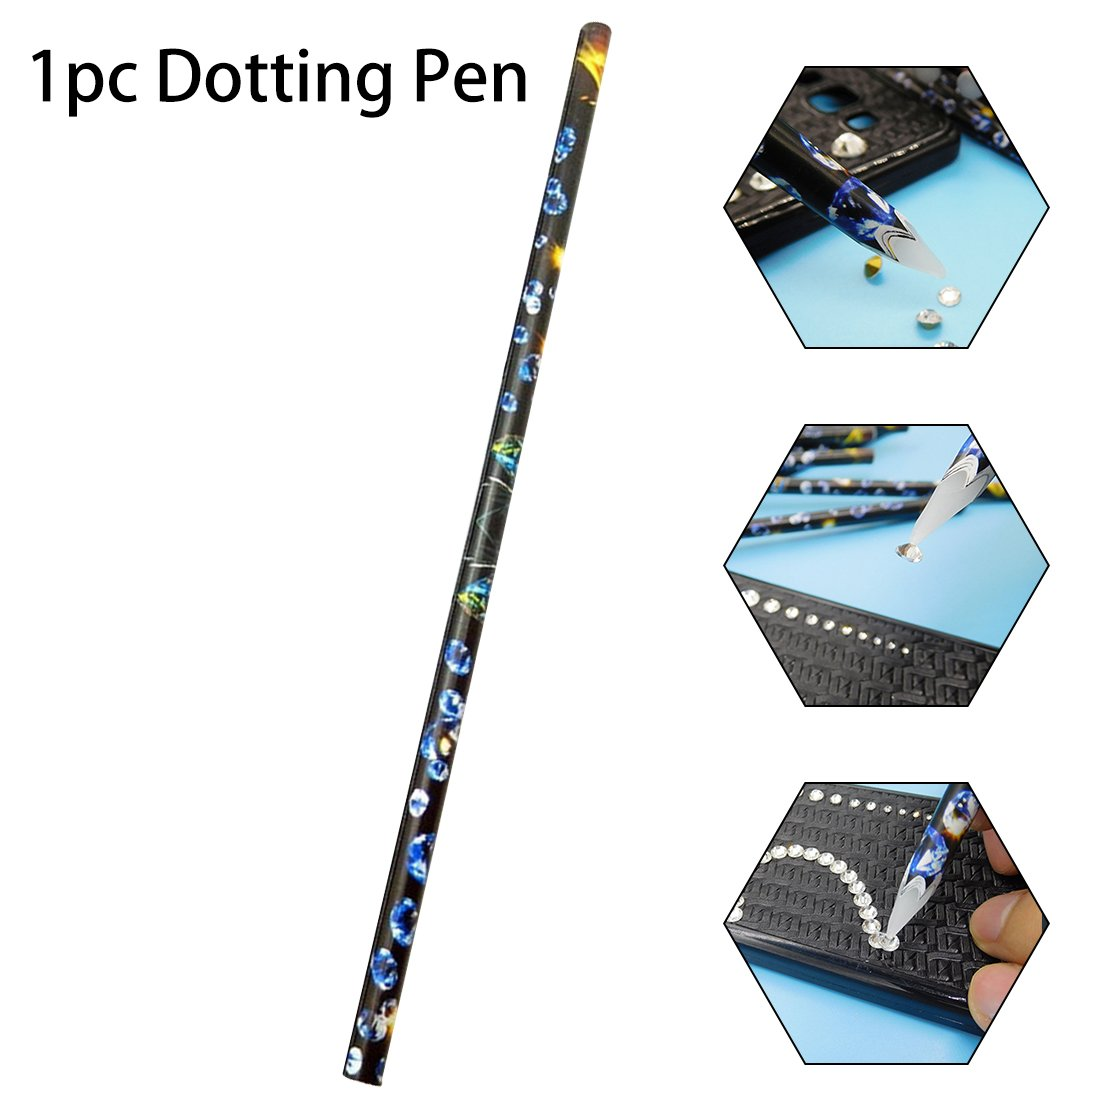 1PC Nail Art Manicure Dotting Pen Compatible With 3D Nail Decoration Tool Wax Pen ChenYao-Swansea